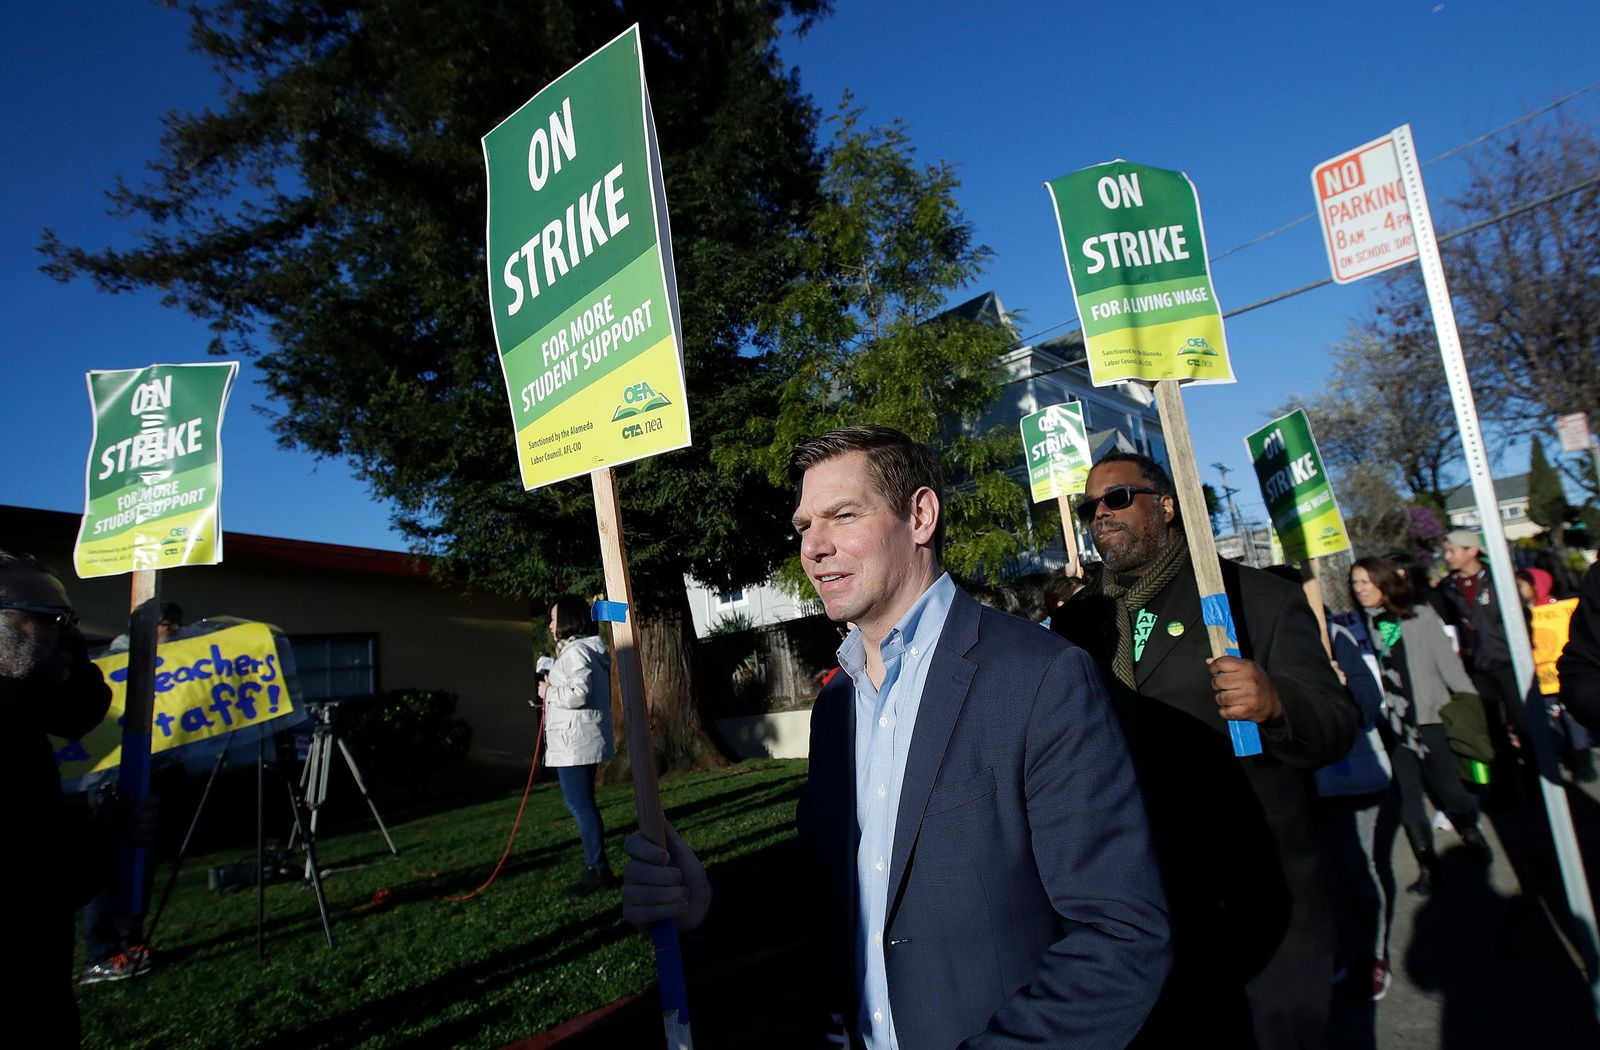 Rep. Eric Swalwell, D-Calif., center, marches with Oakland Education Association President Keith Brown, center right, along with teachers and supporters outside of Manzanita Community School in Oakland, Calif., Thursday, Feb. 21, 2019. (AP Photo/Jeff Chiu)